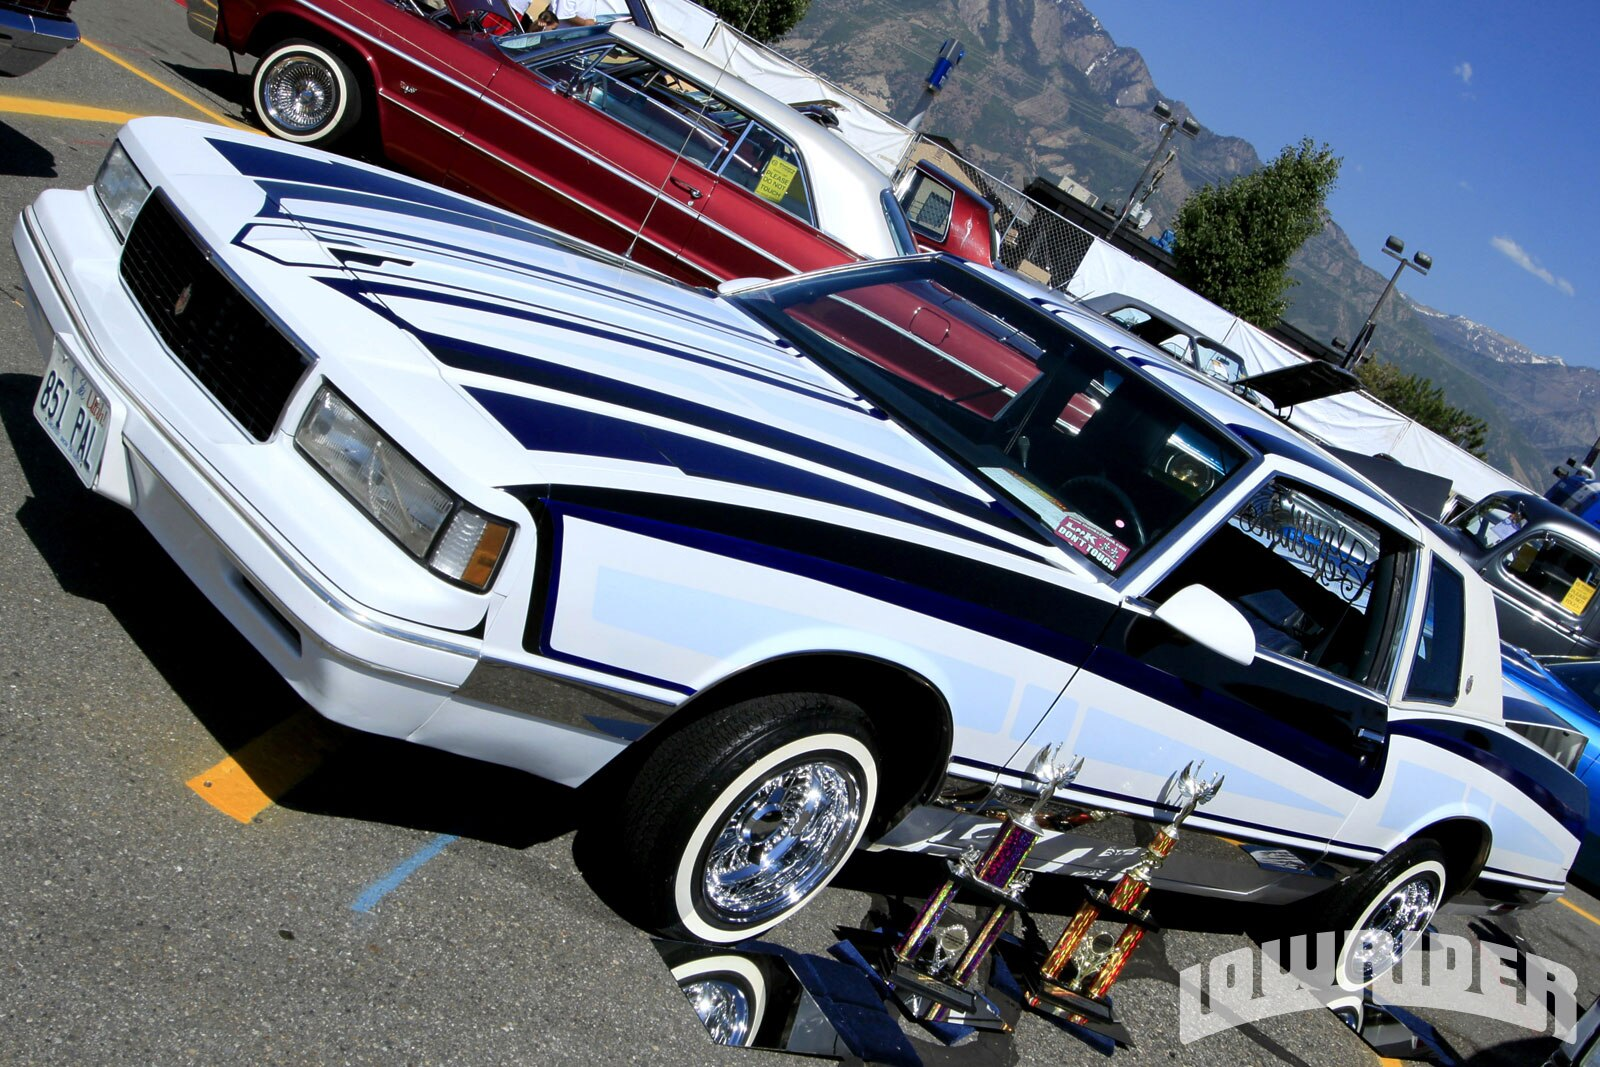 Victor Tires Car Show 2017